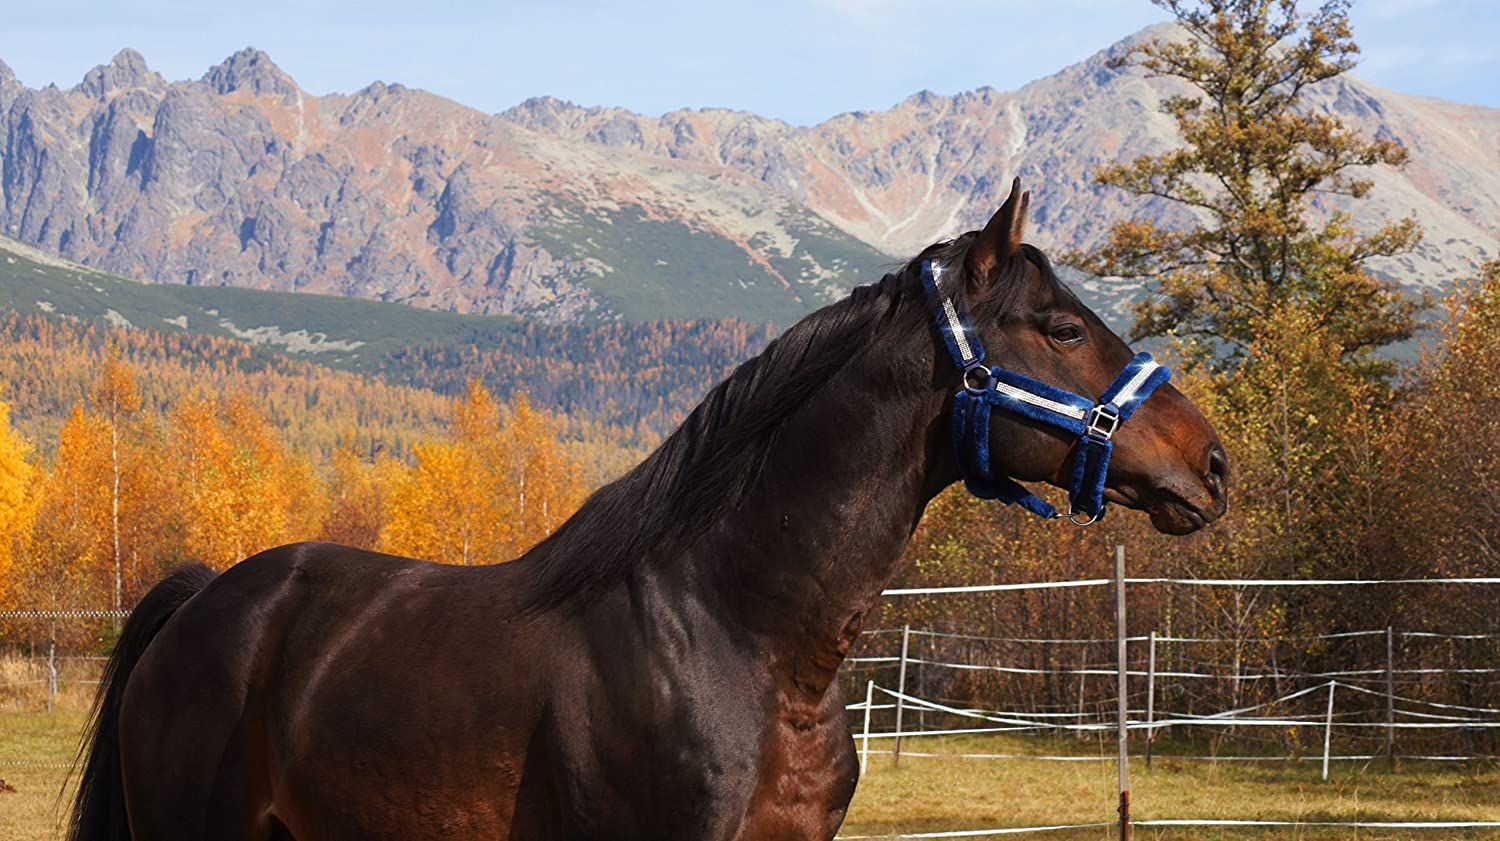 Transport-Halfter Rittmeister Comfort Halfter Nobility Stall-Halfter Pferde-Halfter Cob Full Pony